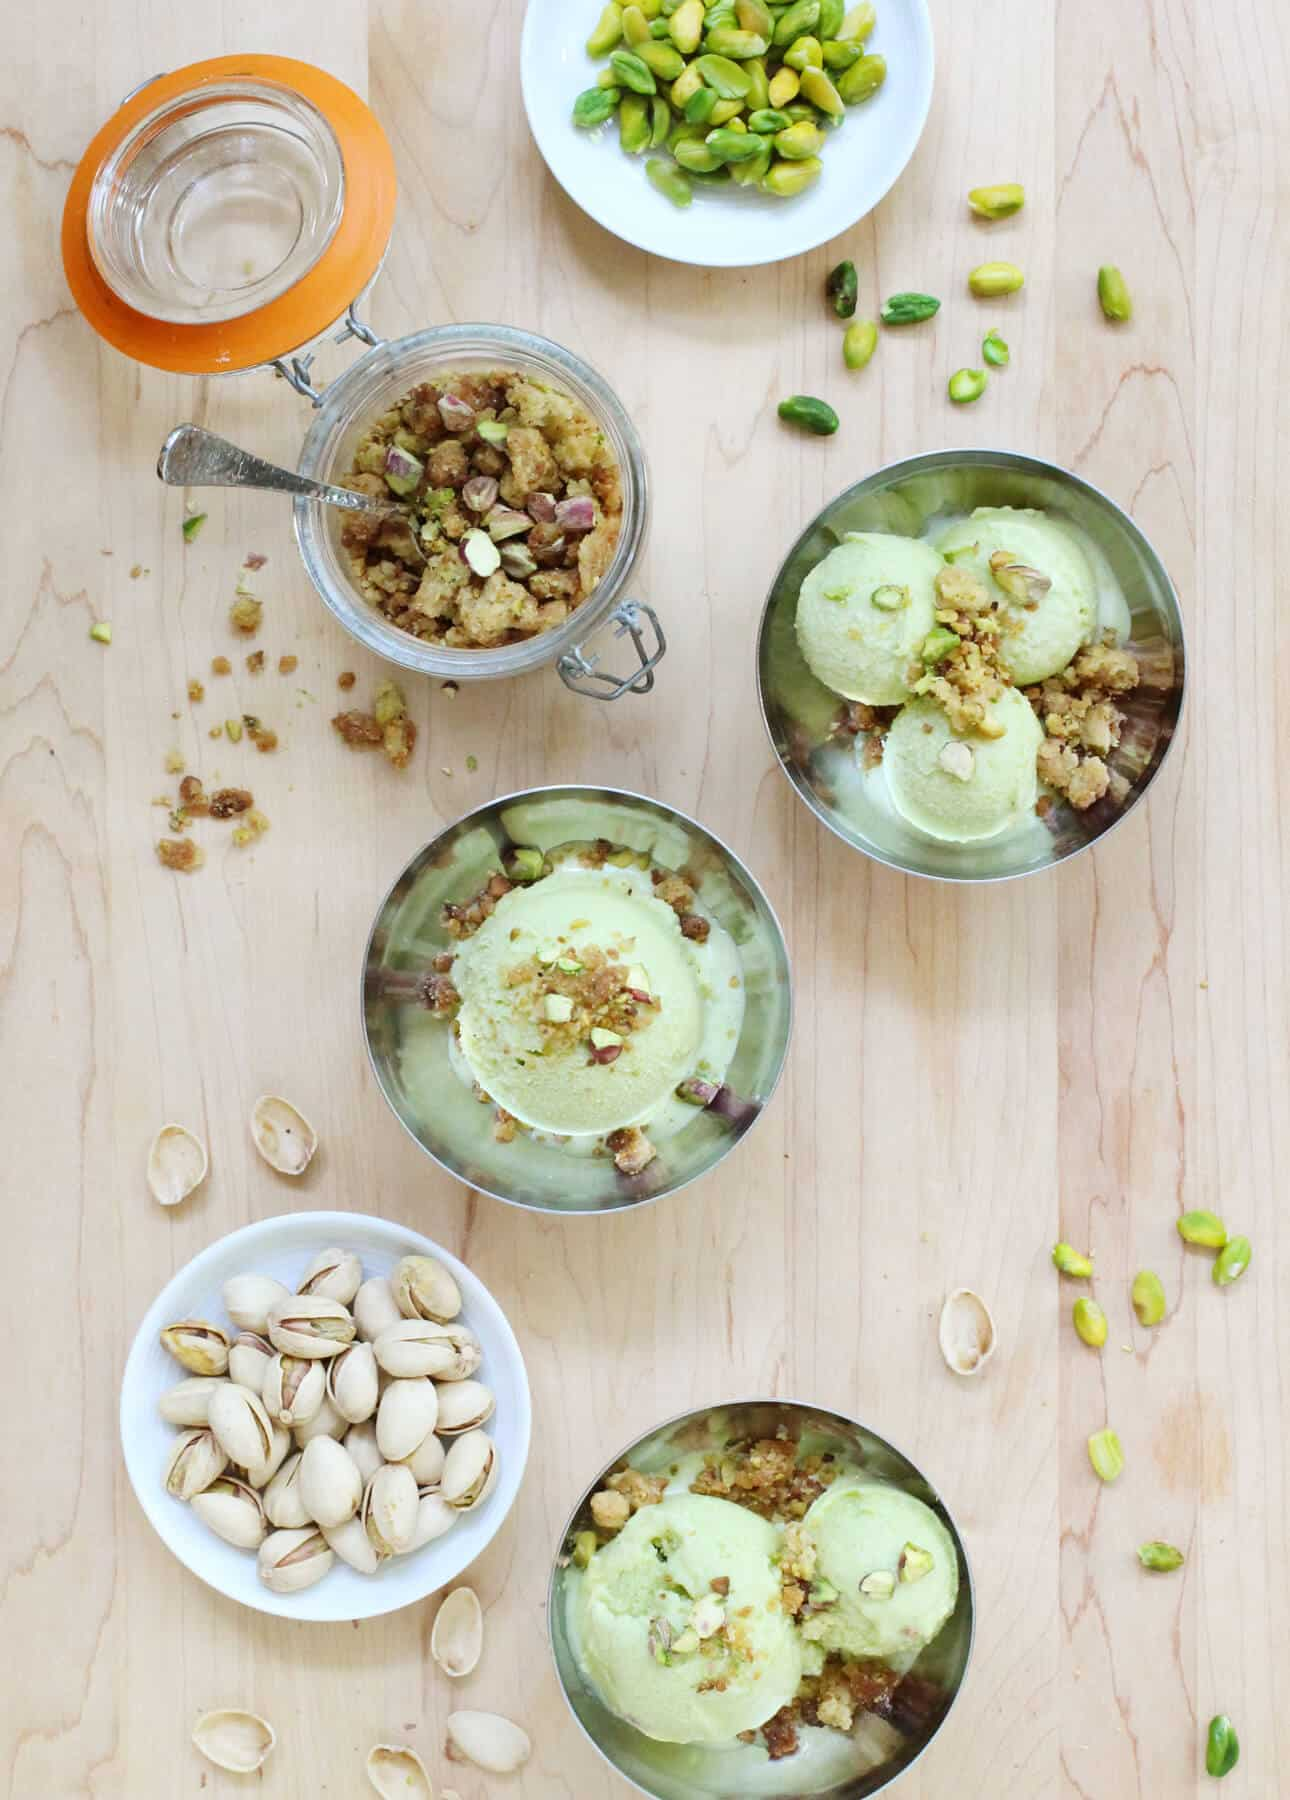 Pistachio Gelato (Made with Homemade Pistachio Paste)